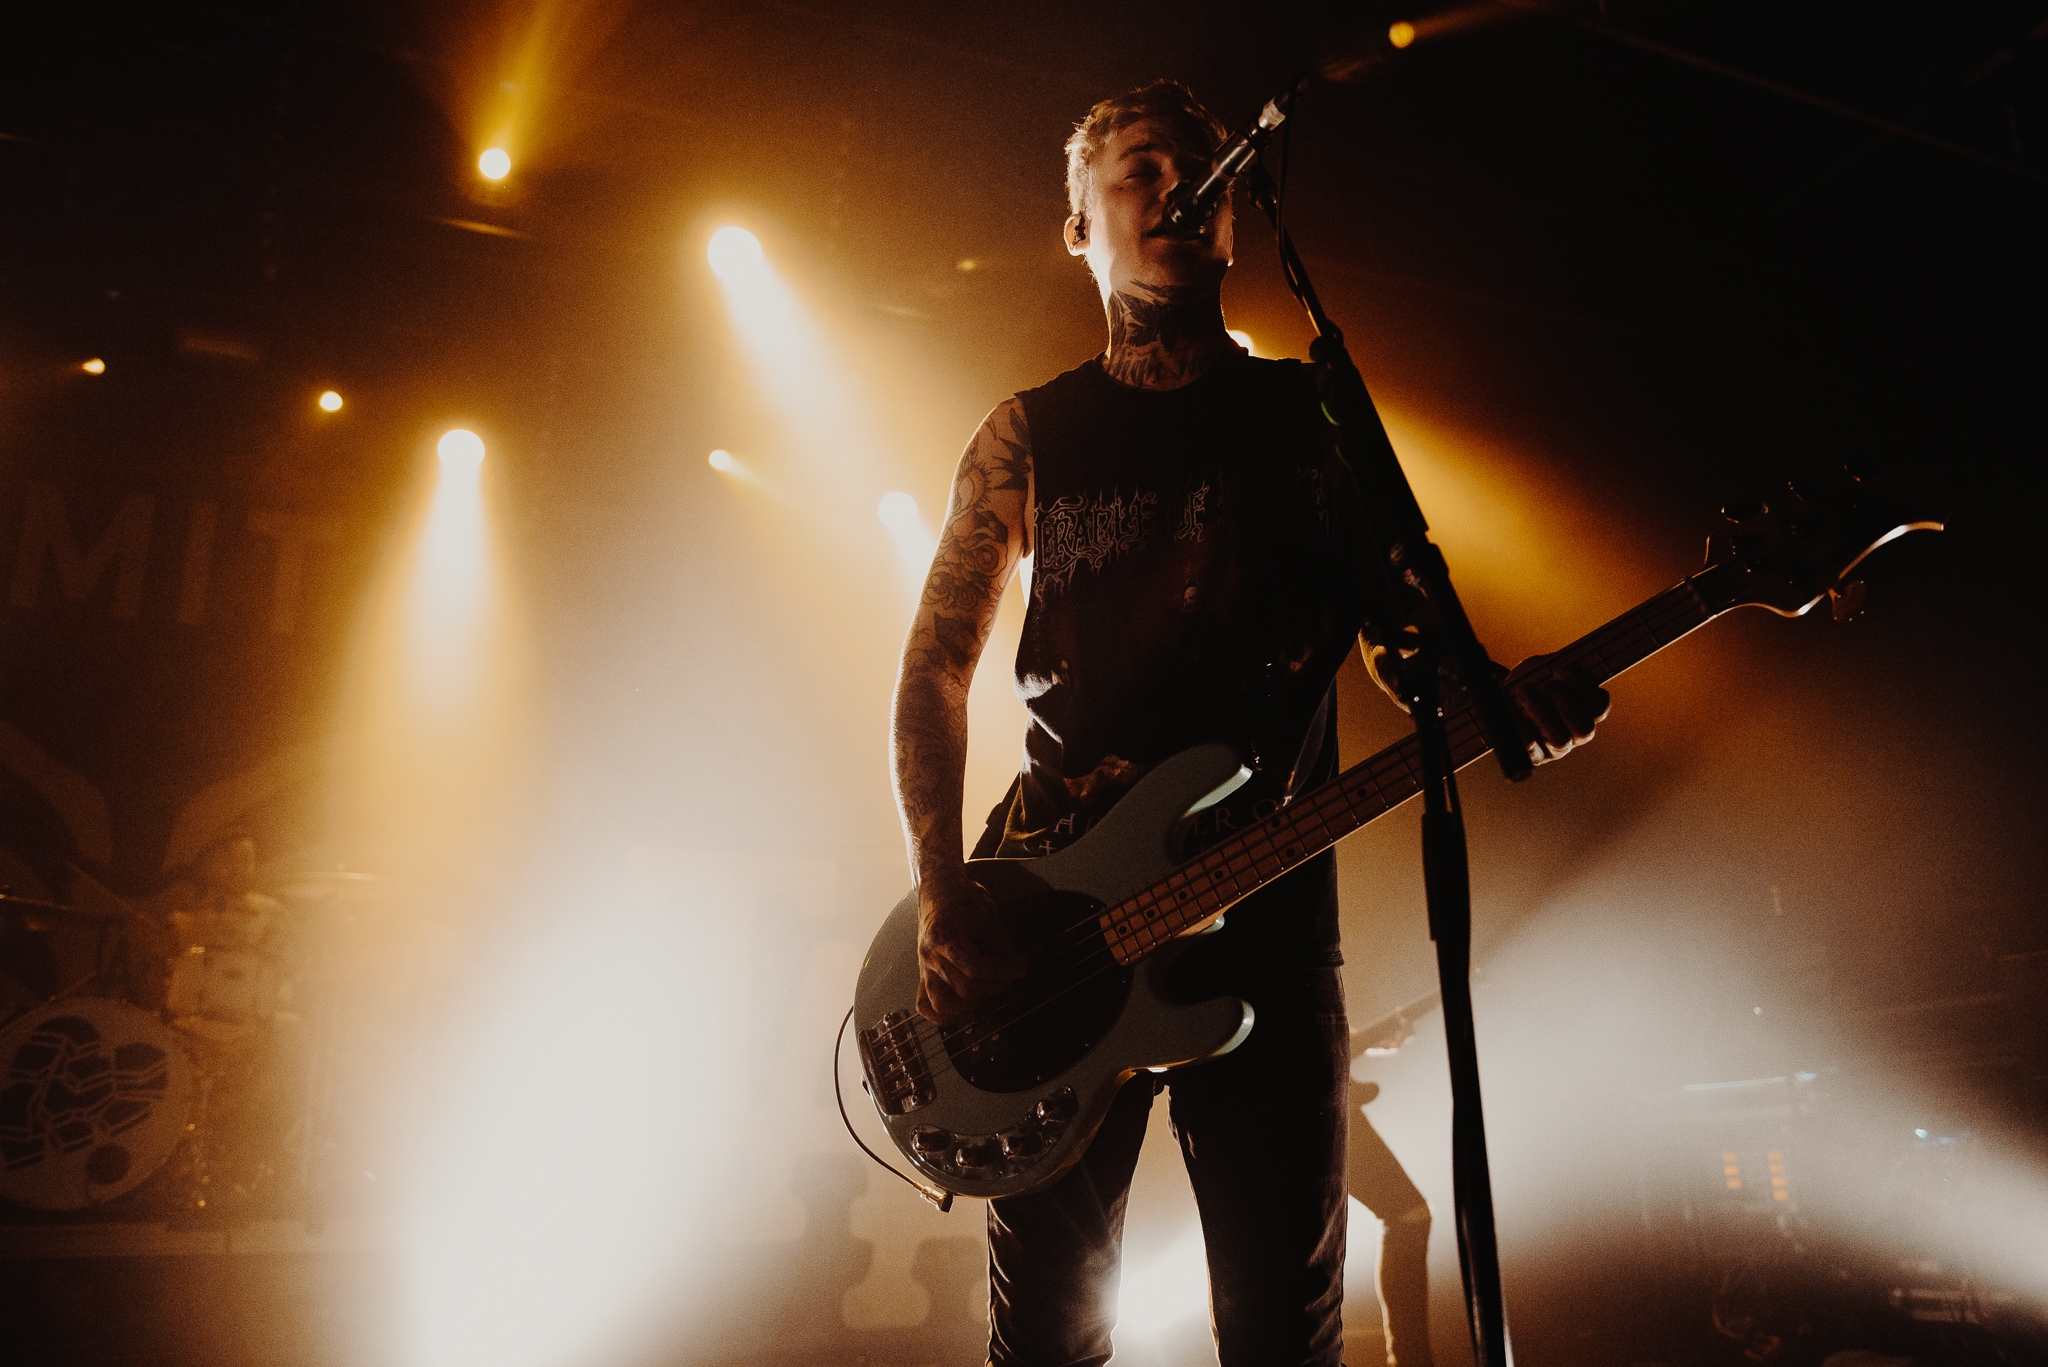 20161202-the amity affliction-2792.jpg